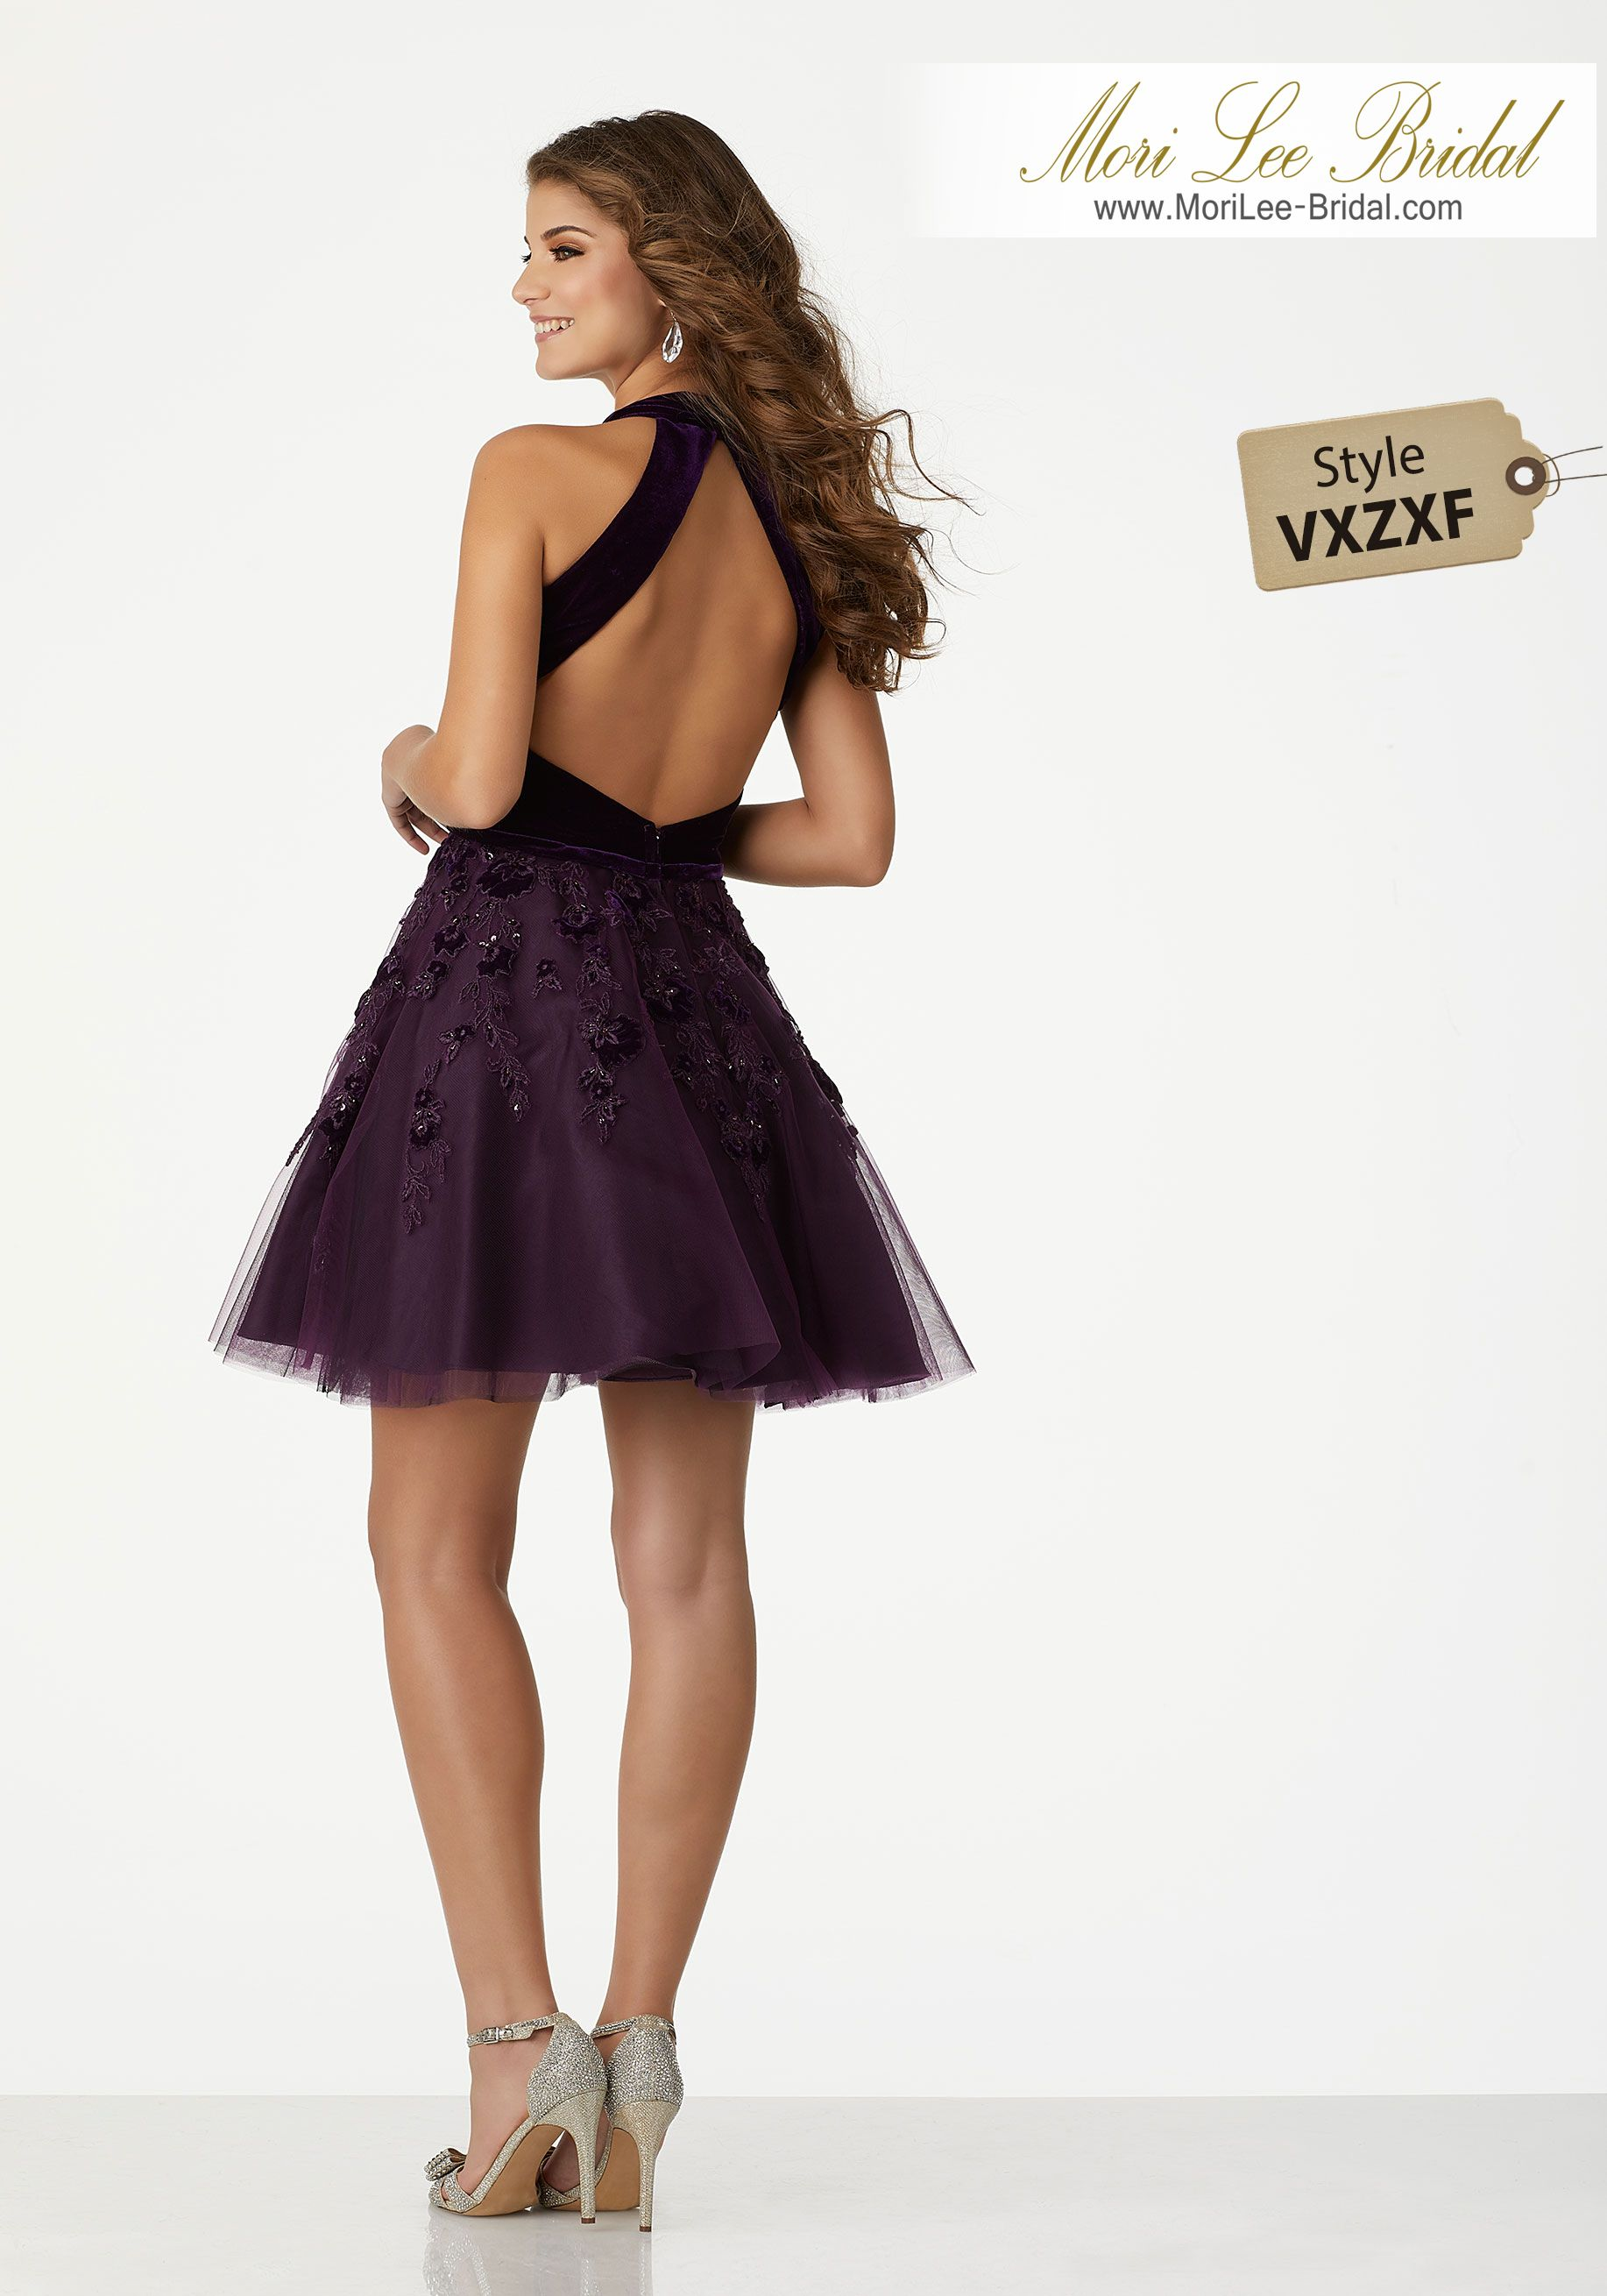 Style vxzxfsophisticated party dress featuring a stretch velvet